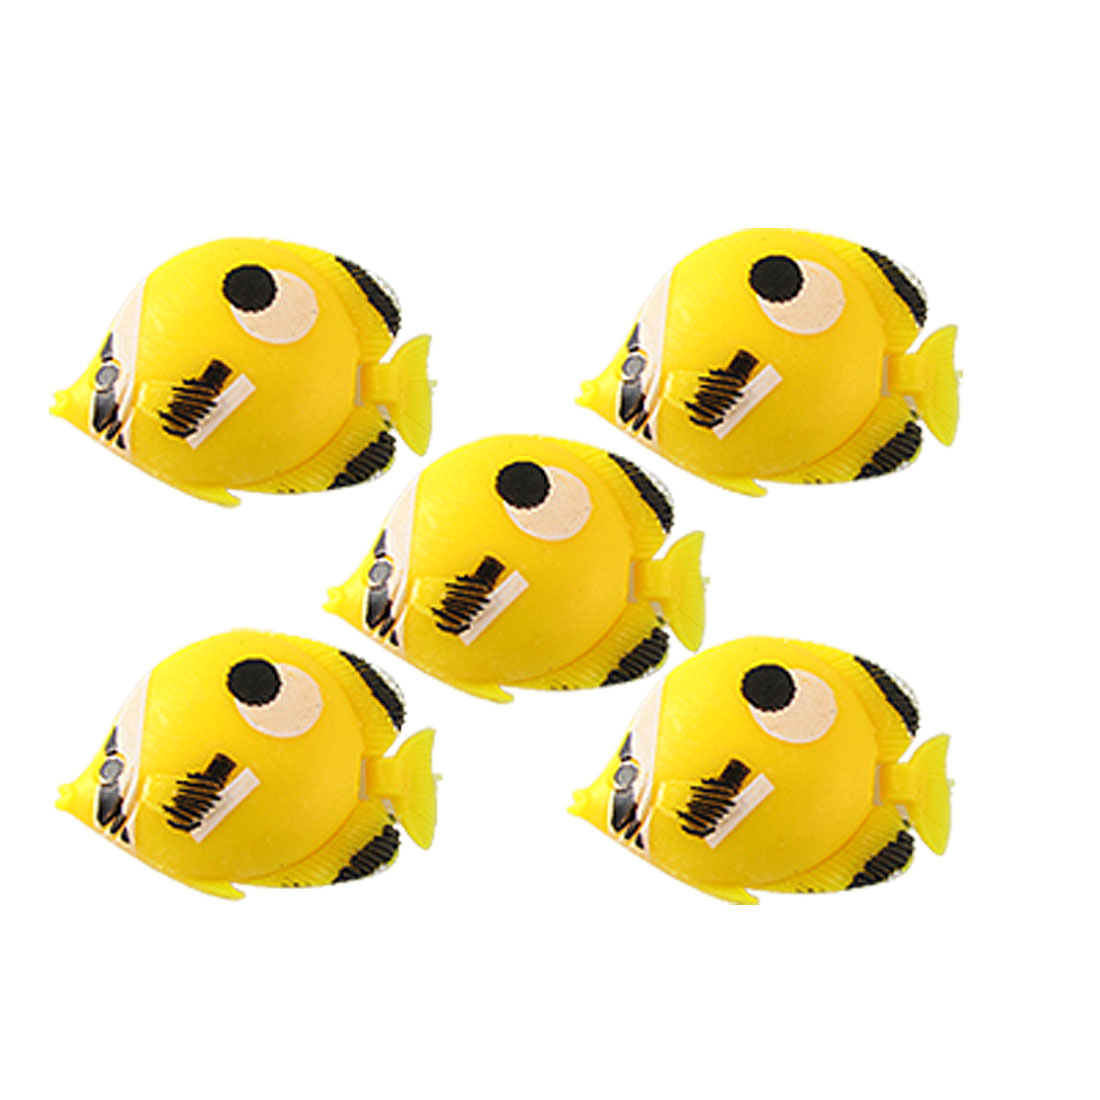 5 x Yellow Mini Floating Plastic Fish Aquarium Ornament